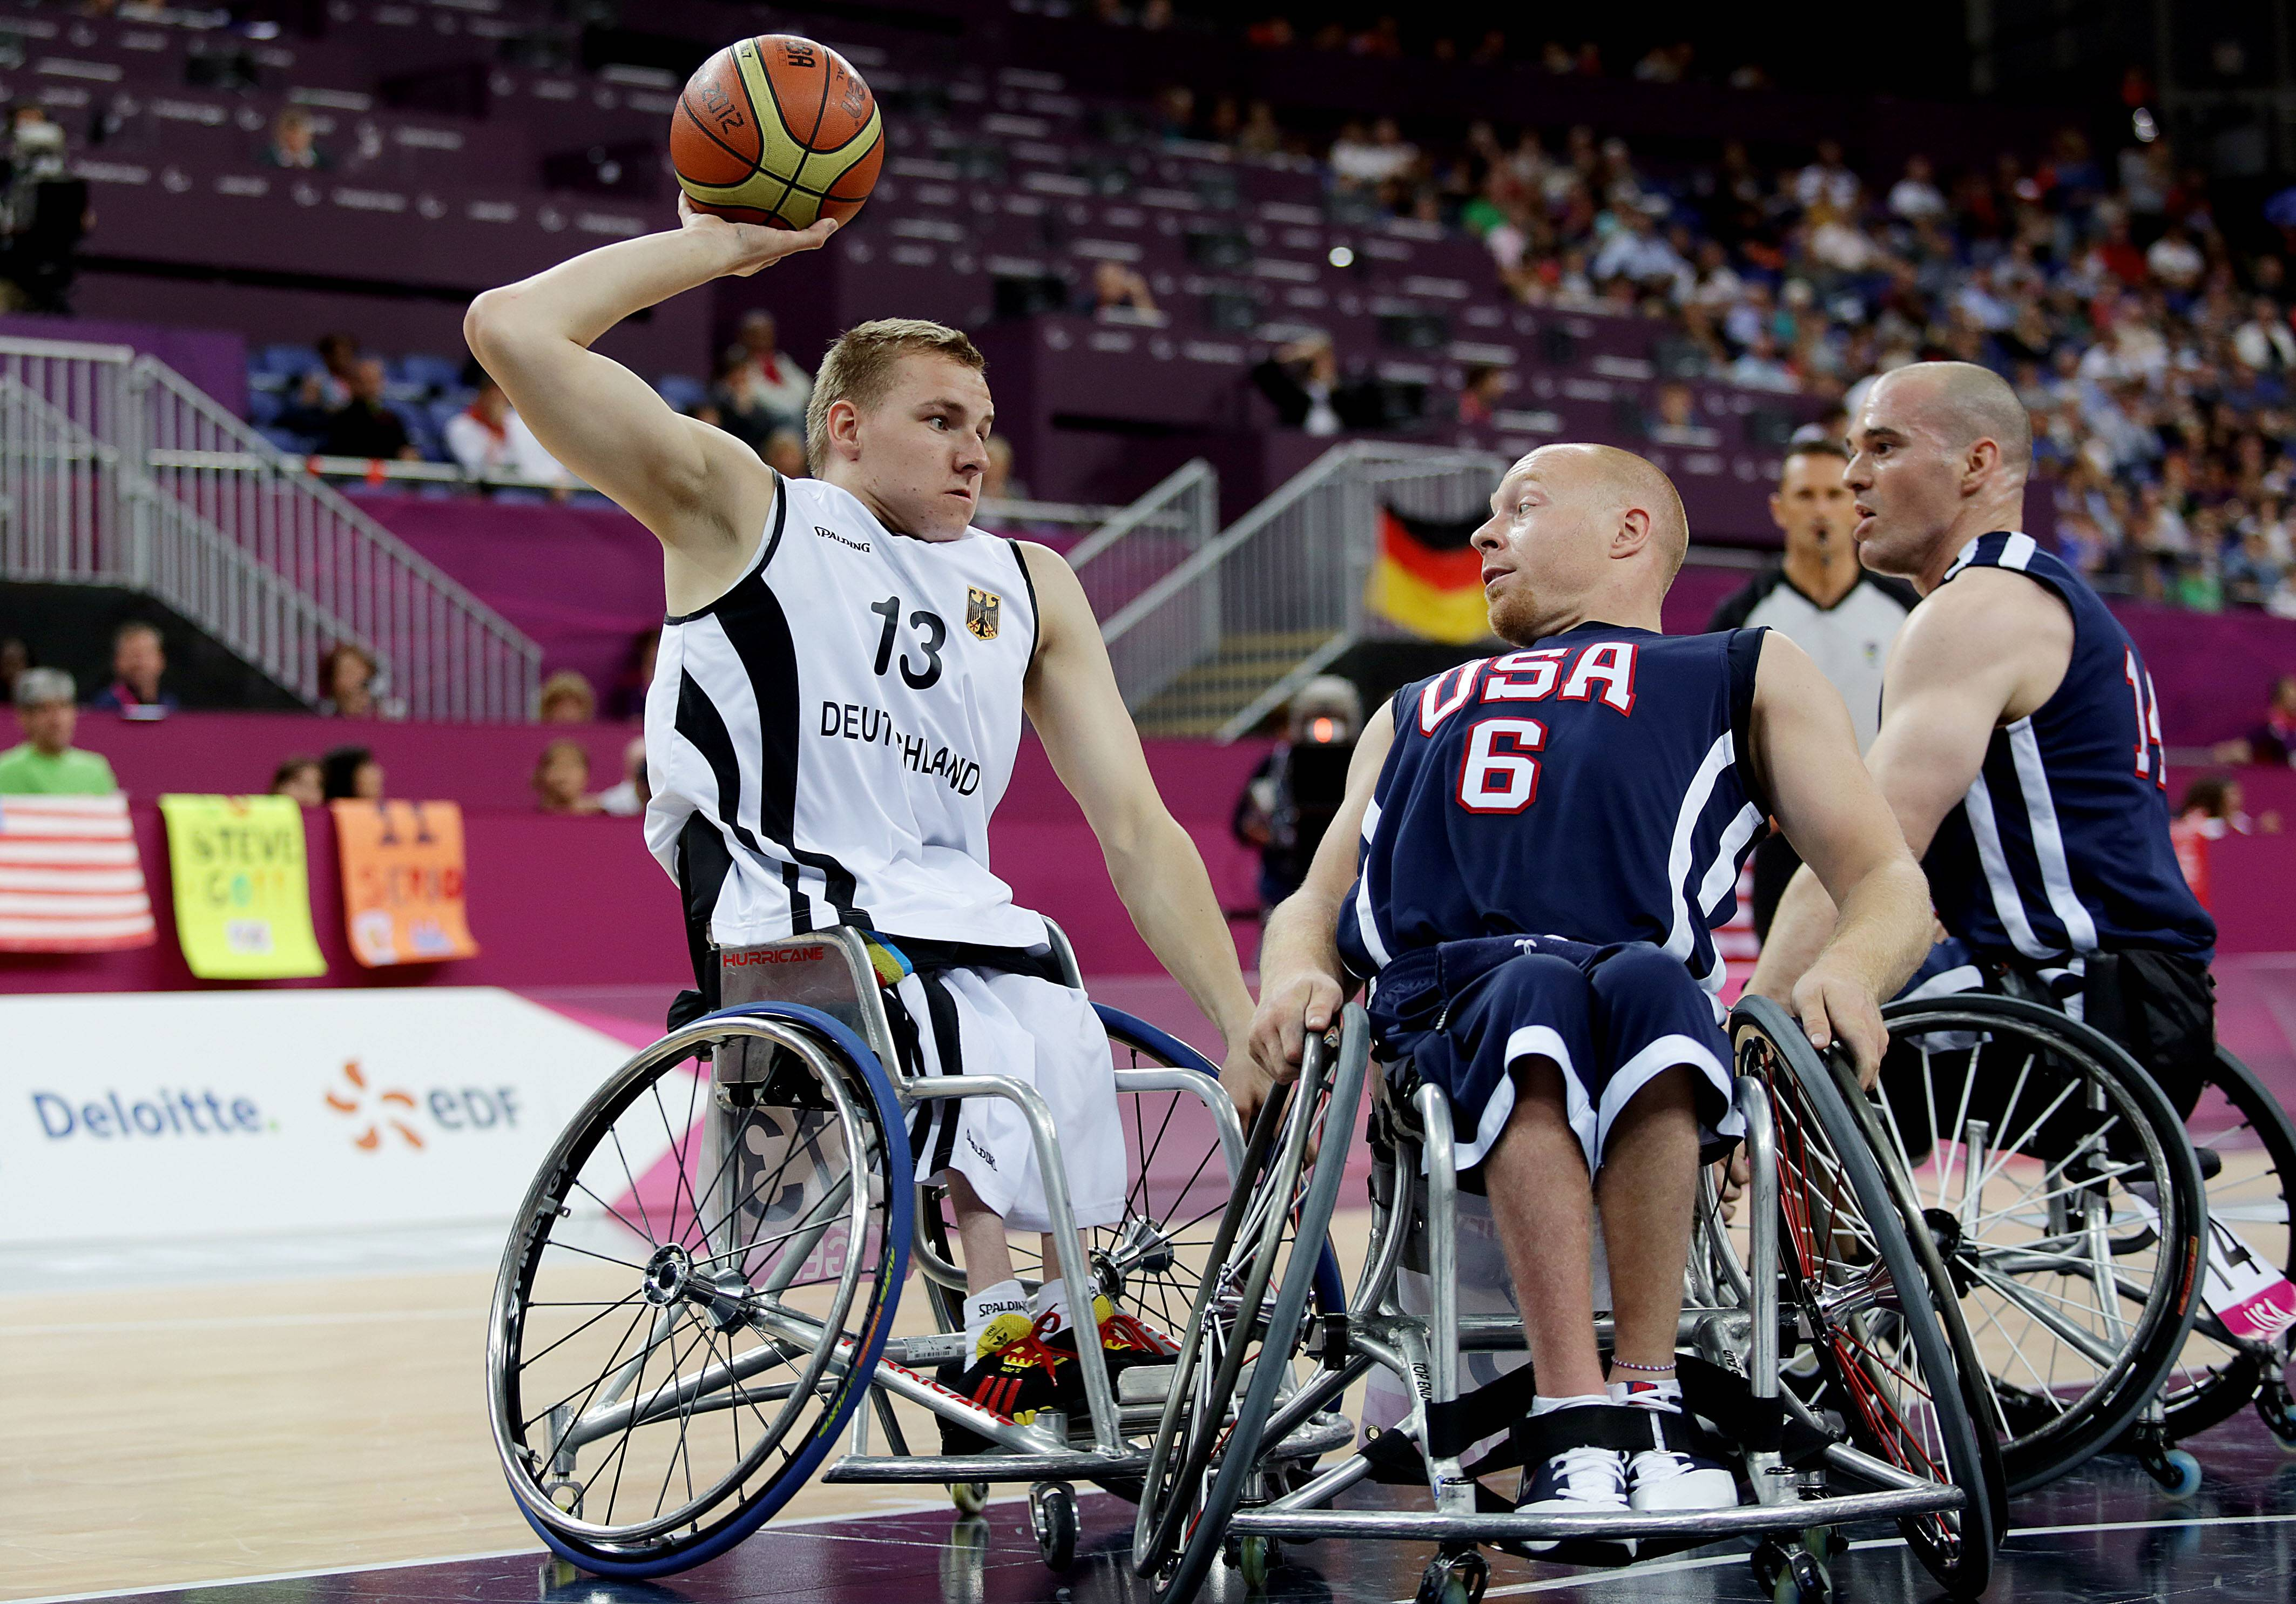 Paralympics: Basketball